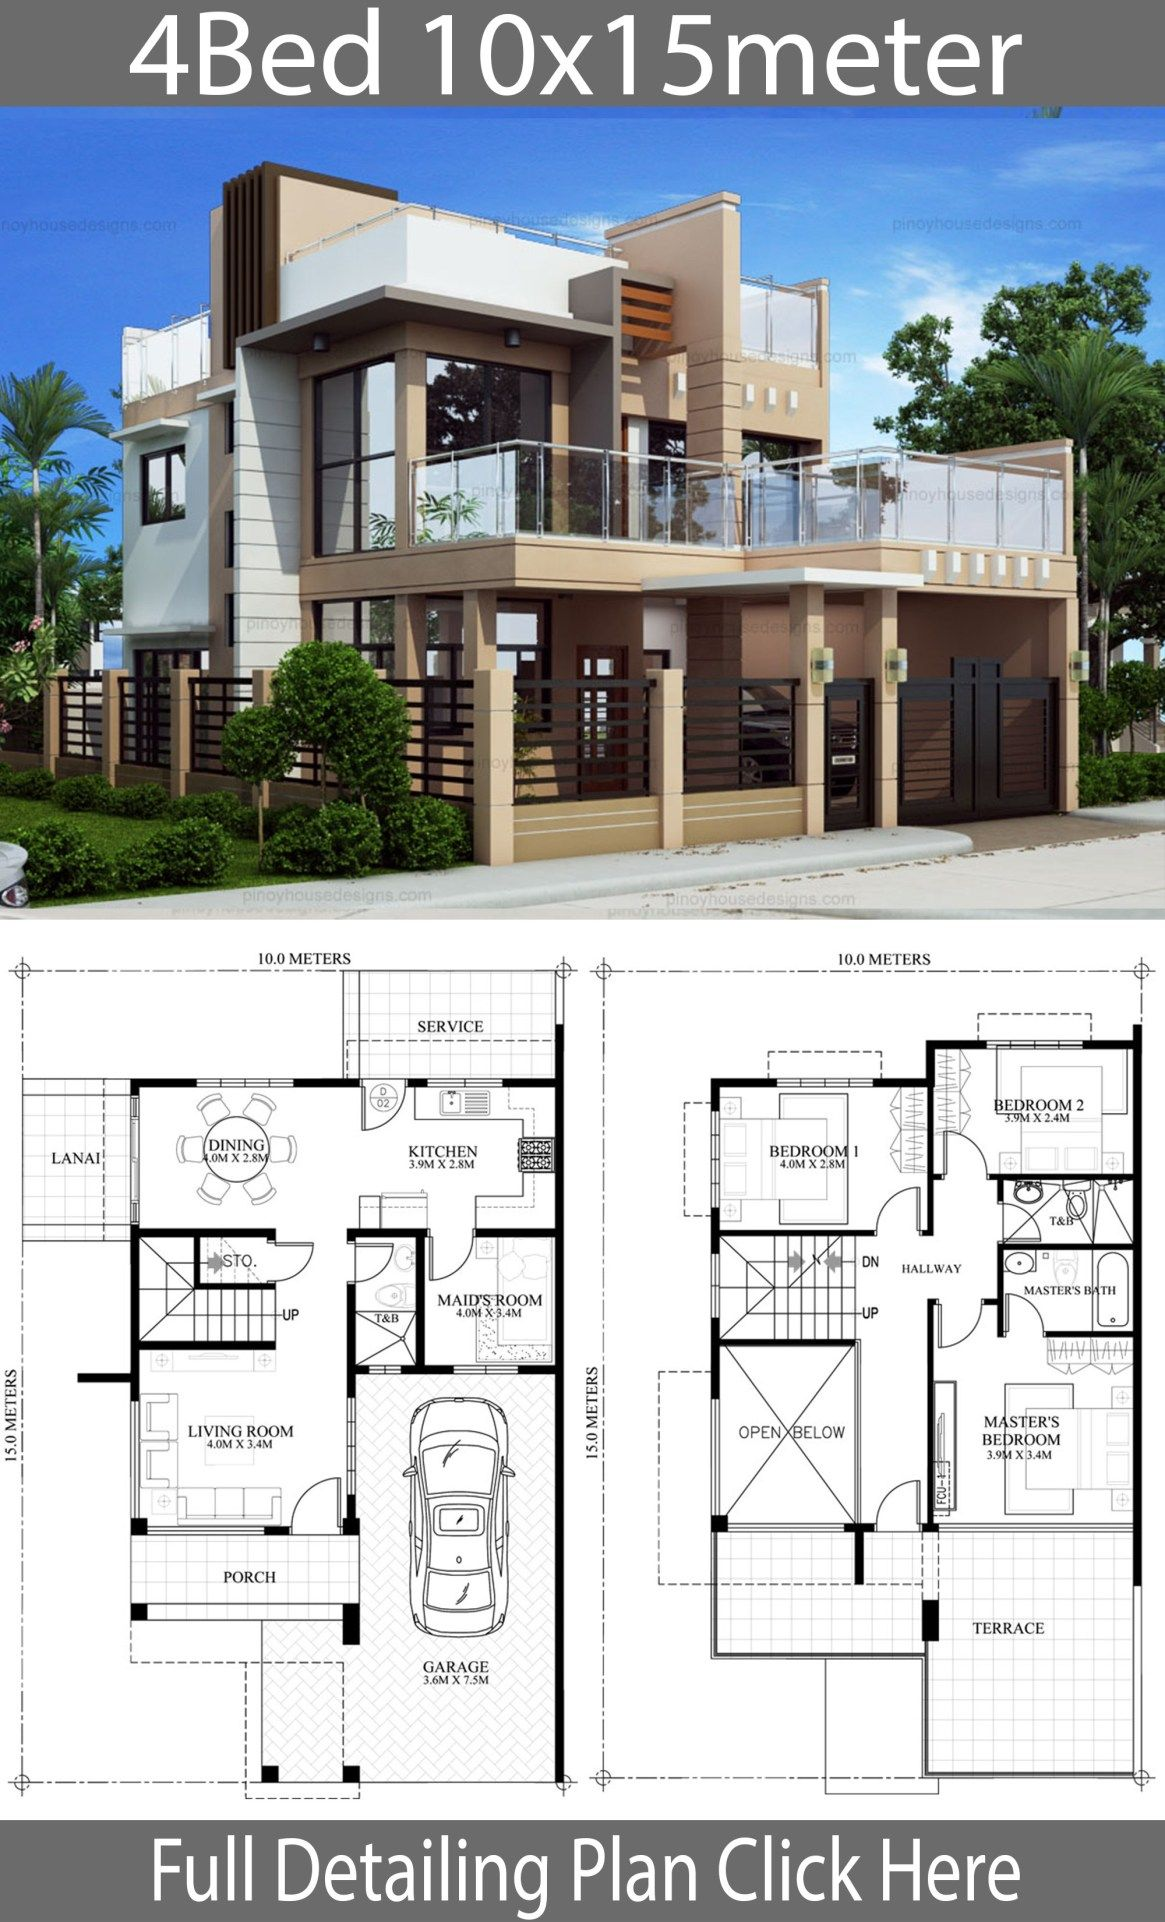 Home Design Plan 10x15m With 4 Bedrooms Home Design With Plansearch House Design Pictures Model House Plan Modern House Plans